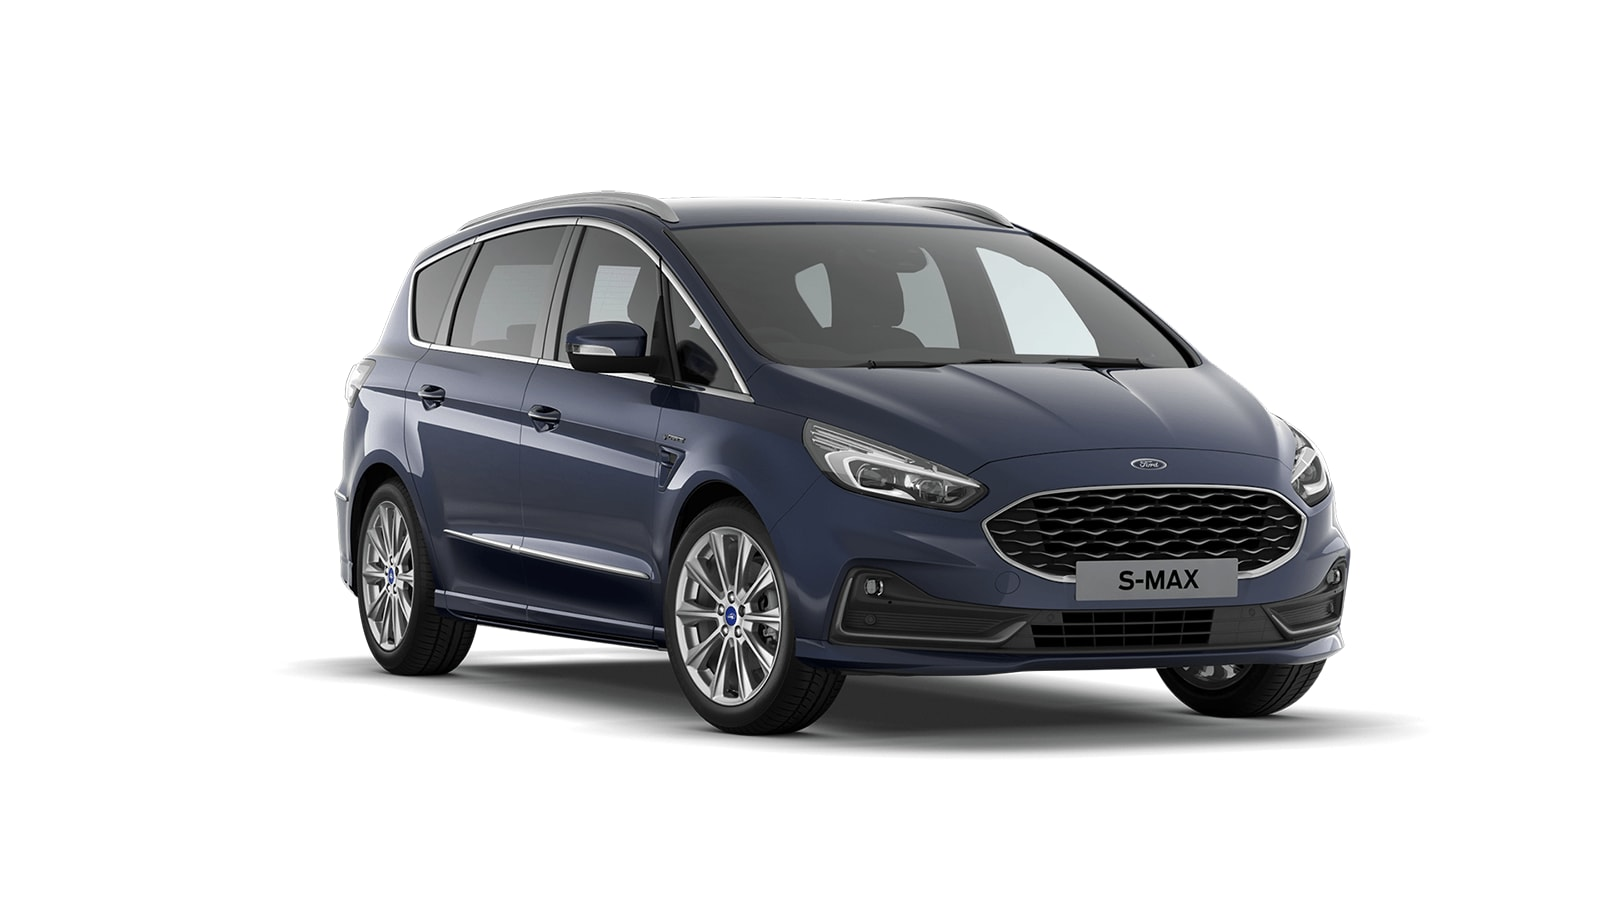 Ford S-MAX at Lamb & Gardiner